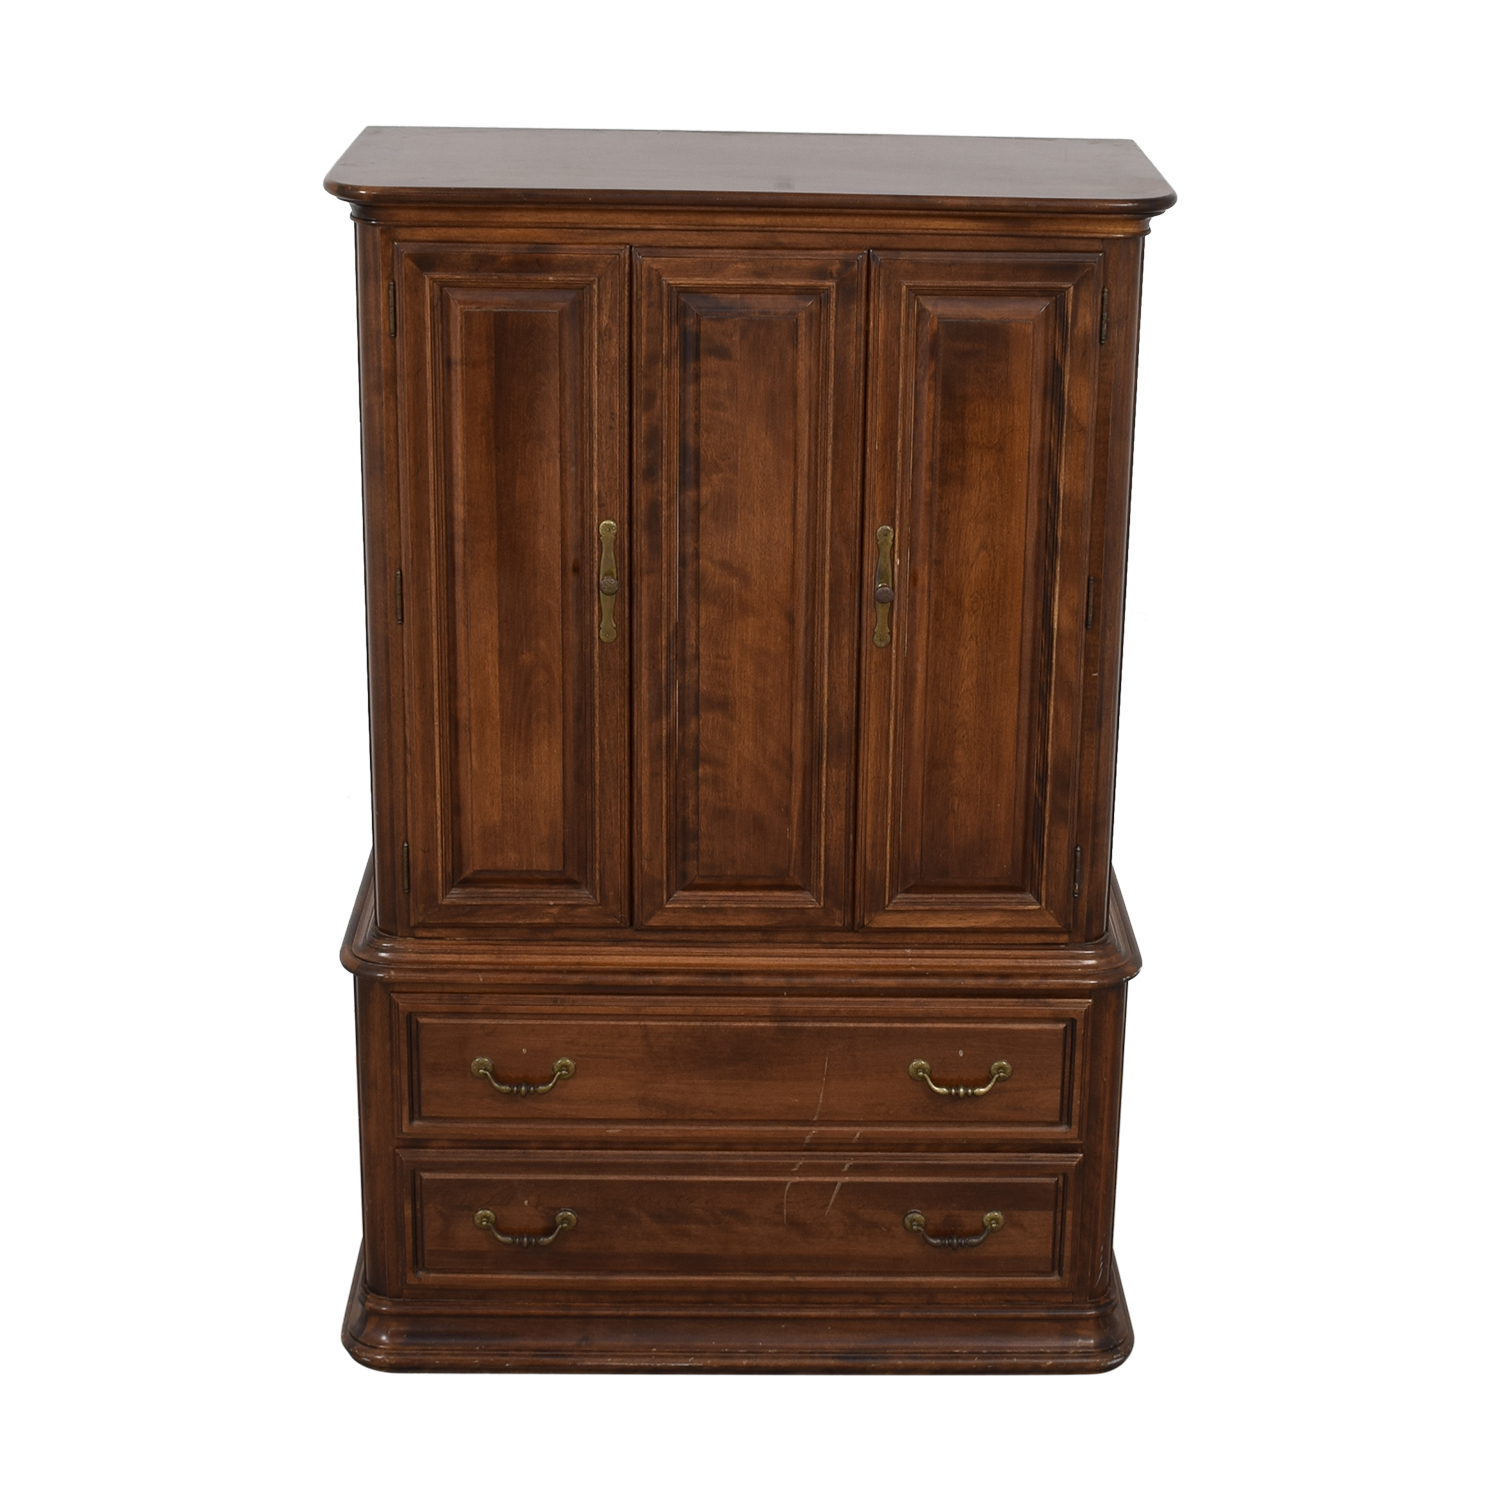 Ethan Allen Ethan Allen Six-Drawer Clothing Armoire Wardrobes & Armoires